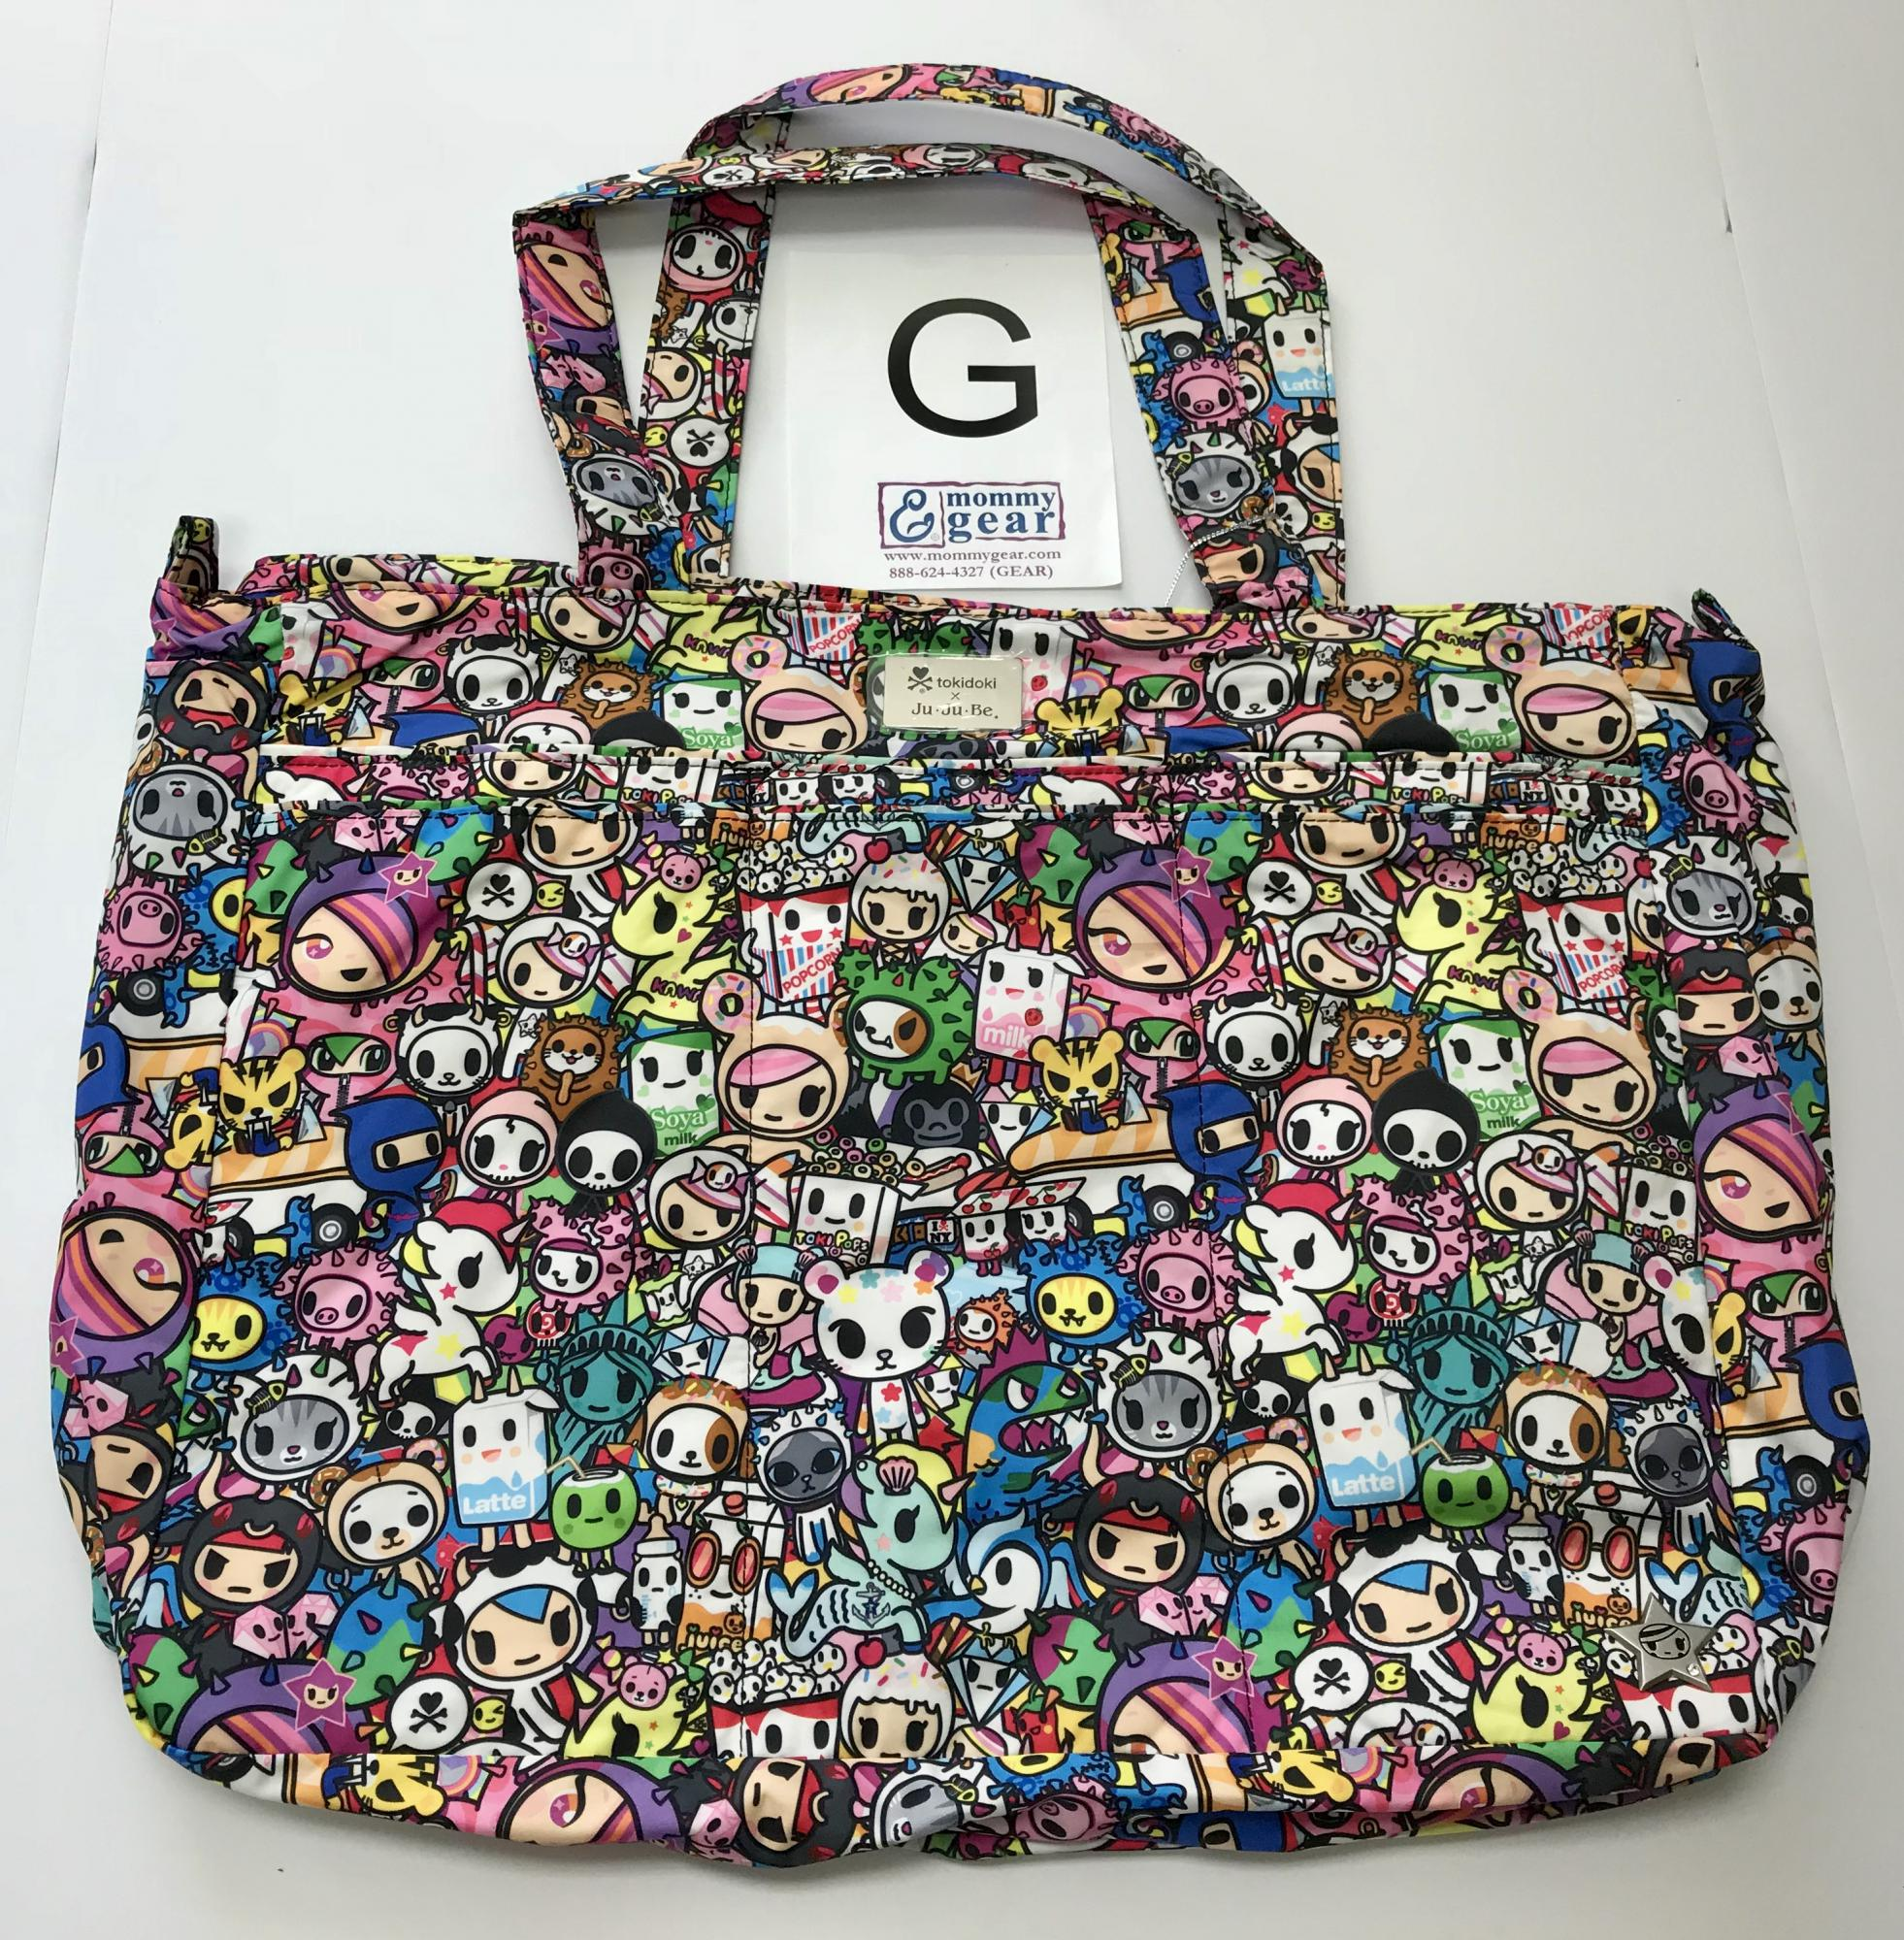 ju-ju-be-tokidoki-iconic-2.0-super-be-pp-g.jpg